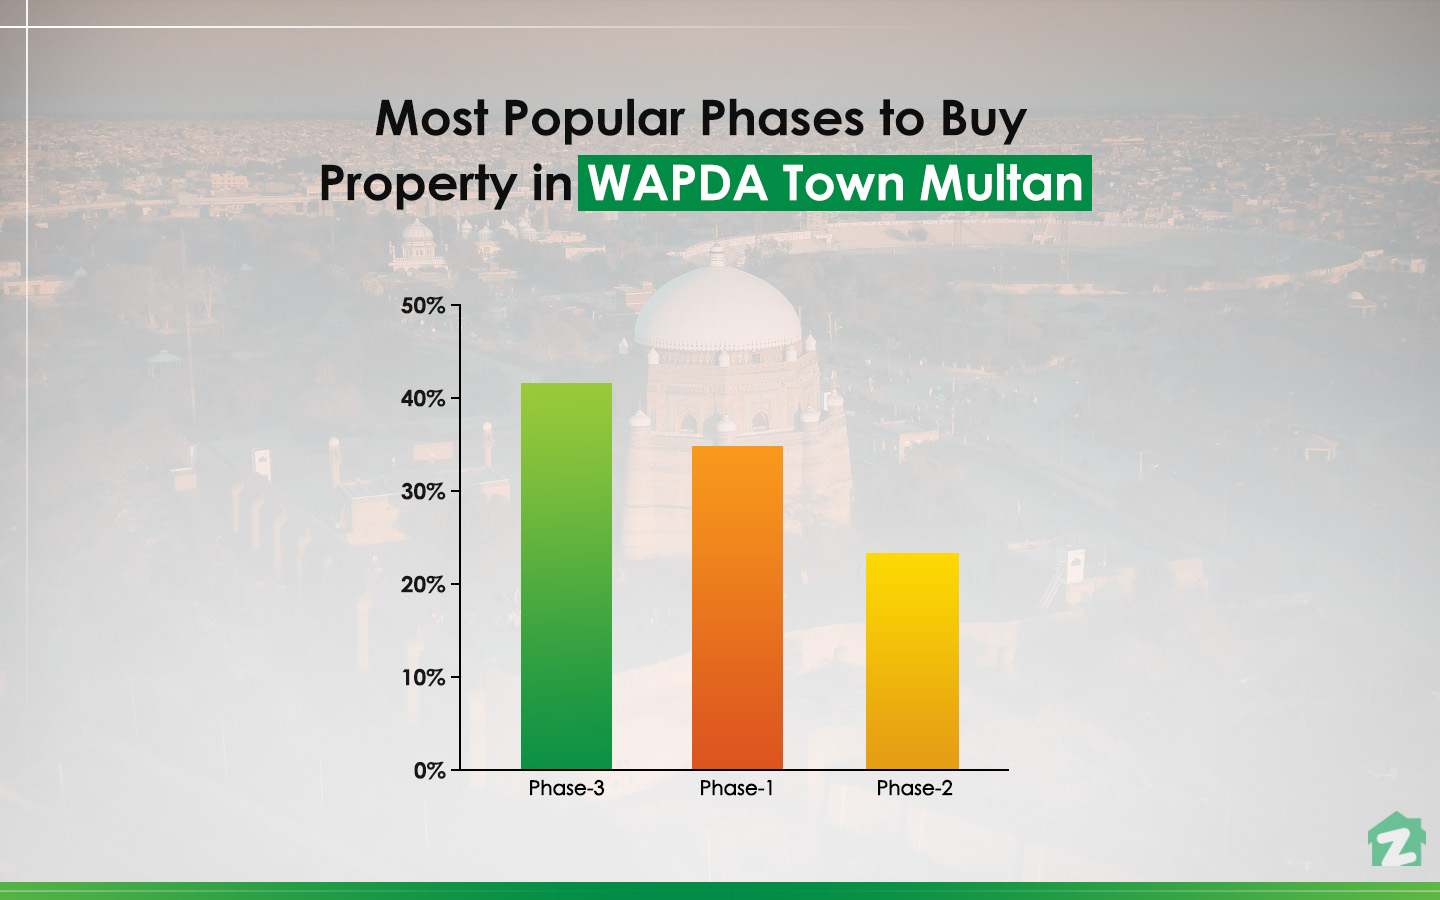 Popular Phases to Buy Property in WAPDA Town Multan